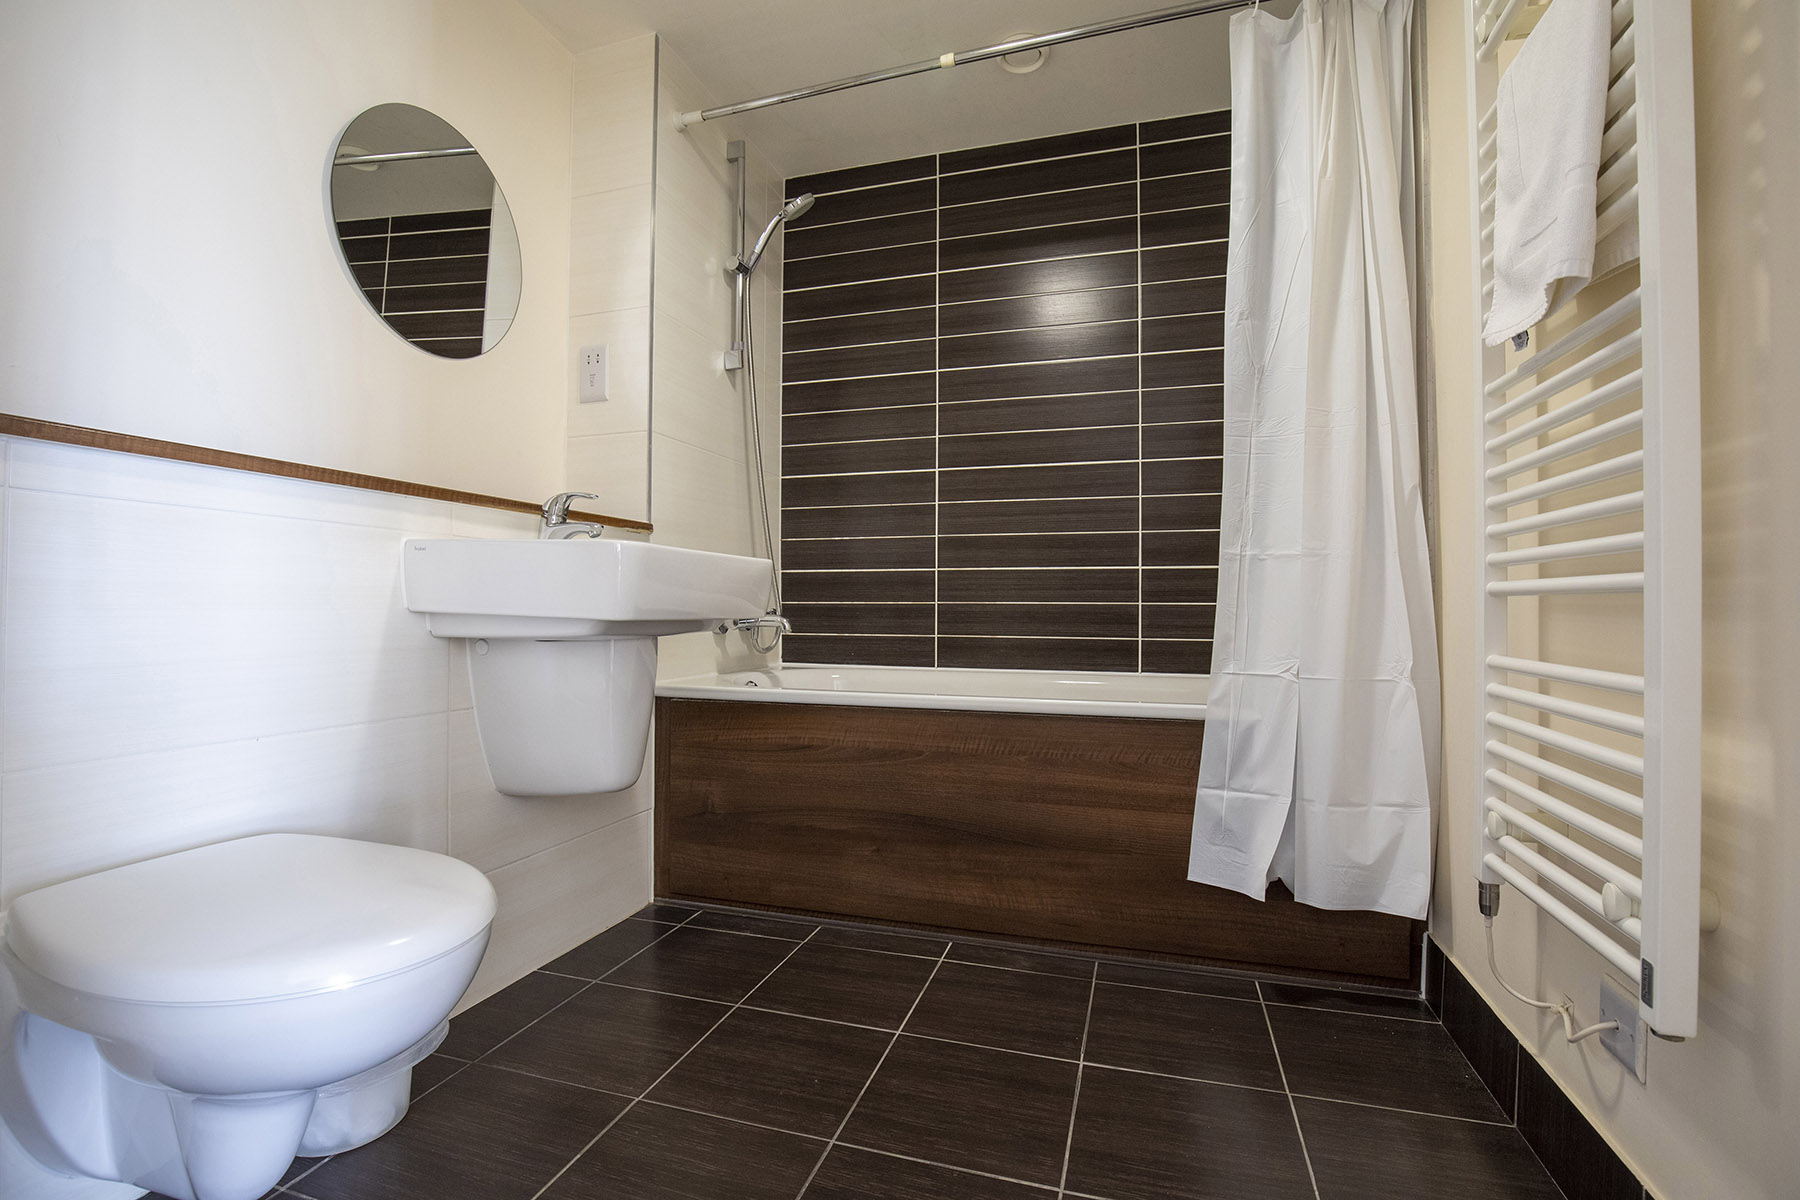 WC at Flexi-Let Skyline Plaza Apartments, Centre, Basingstoke - Citybase Apartments